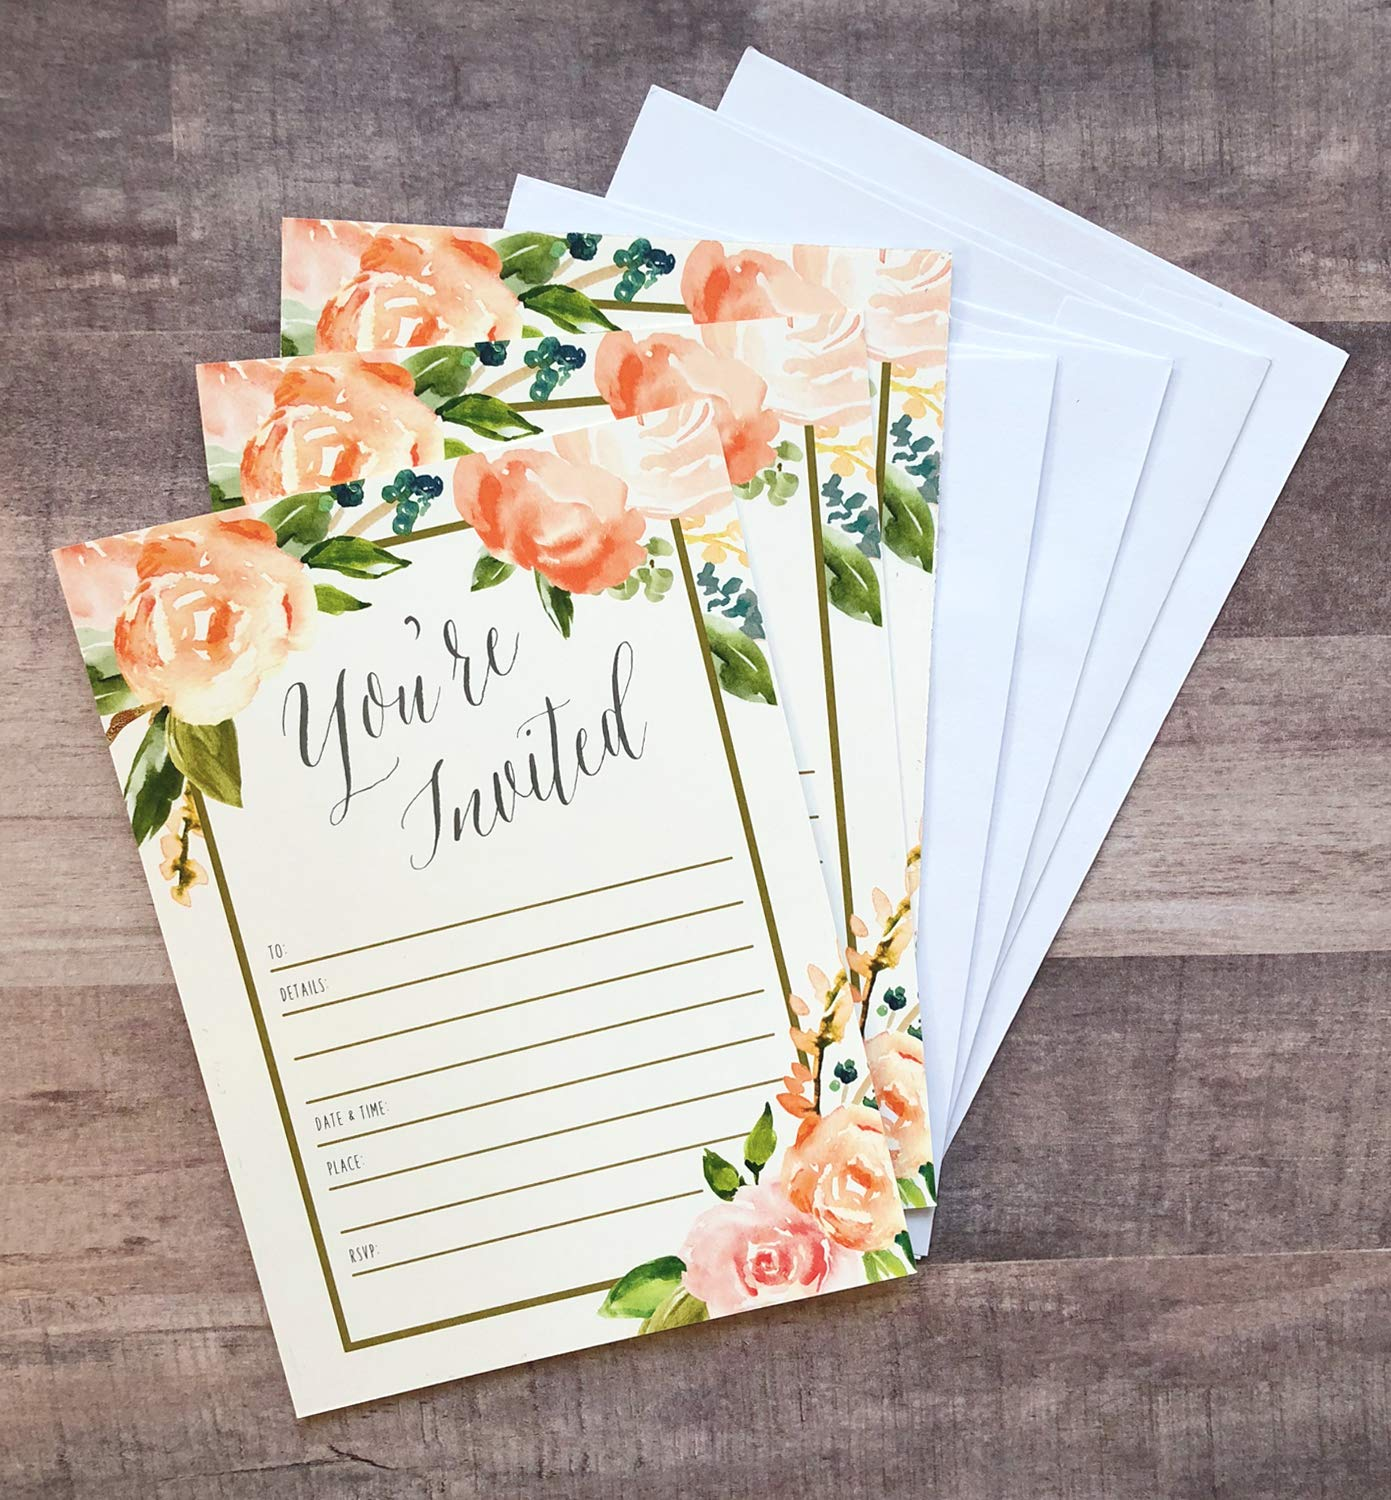 25 Floral Party Invitations with Envelopes | Blank, Fill-in Invites | Great for Bridal Showers, Girl Baby Showers, Graduation, Bachelorette, Sweet 16, Rehearsal Dinner, Birthdays, Weddings by Angie Makes (Image #3)